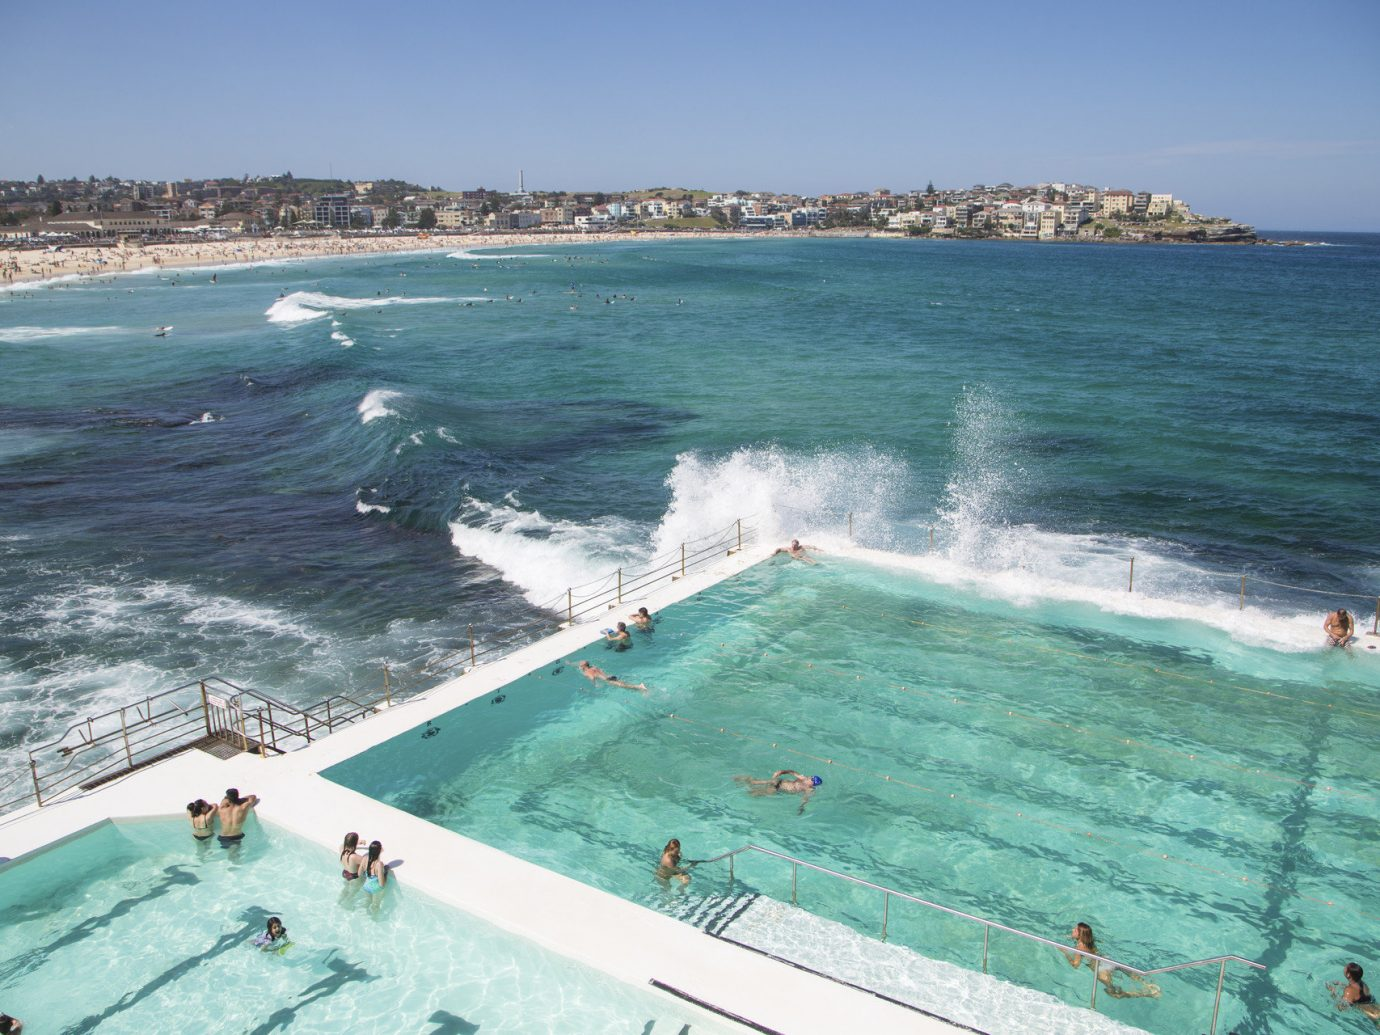 Bondi Icebergs Club, Bondi, Greater Sydney, New South Wales